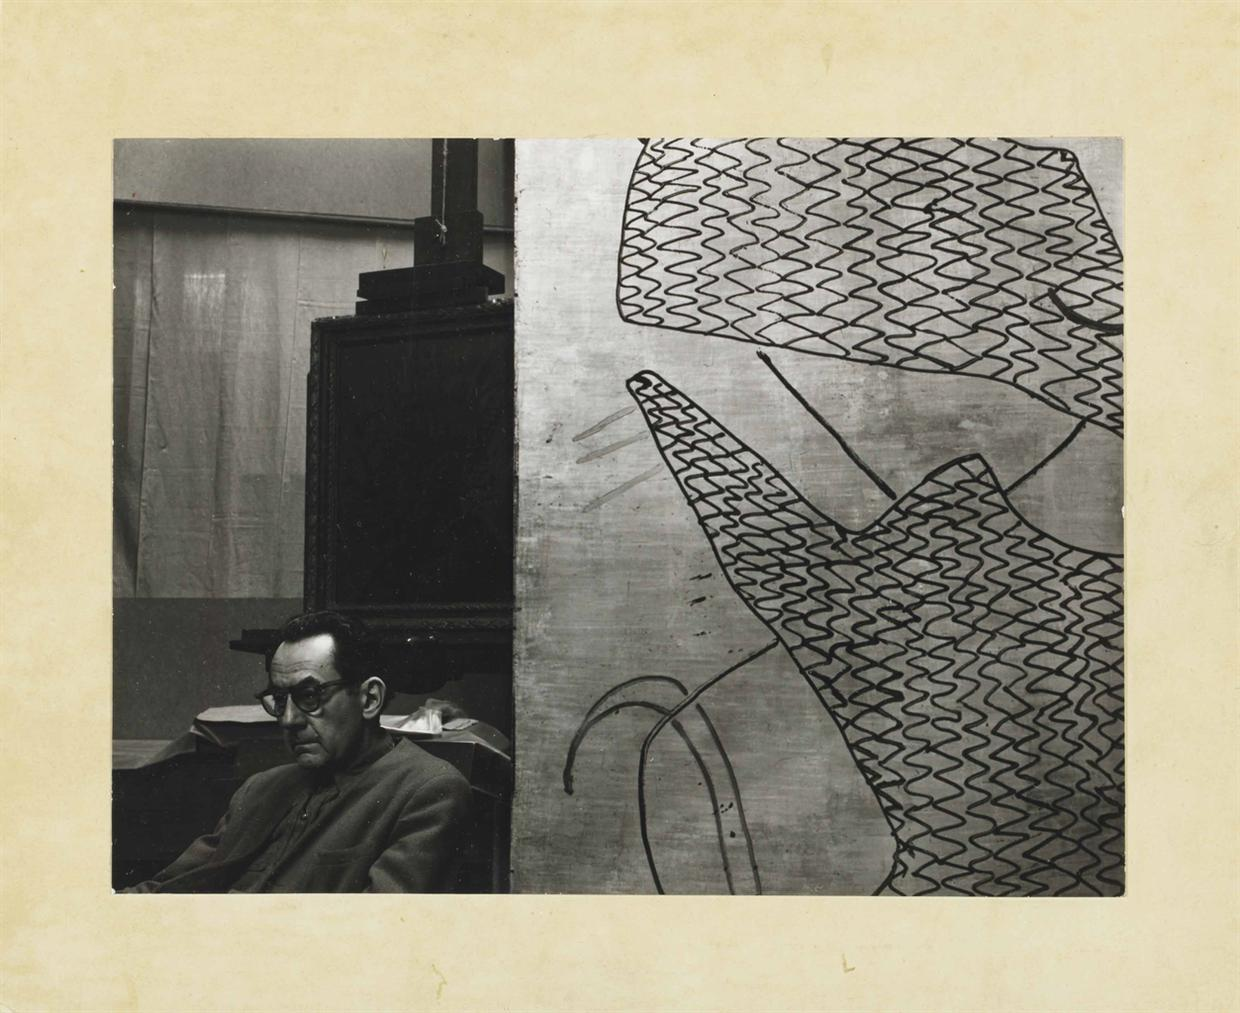 Man Ray-Self-Portrait, Seated In Paris Studio-1930